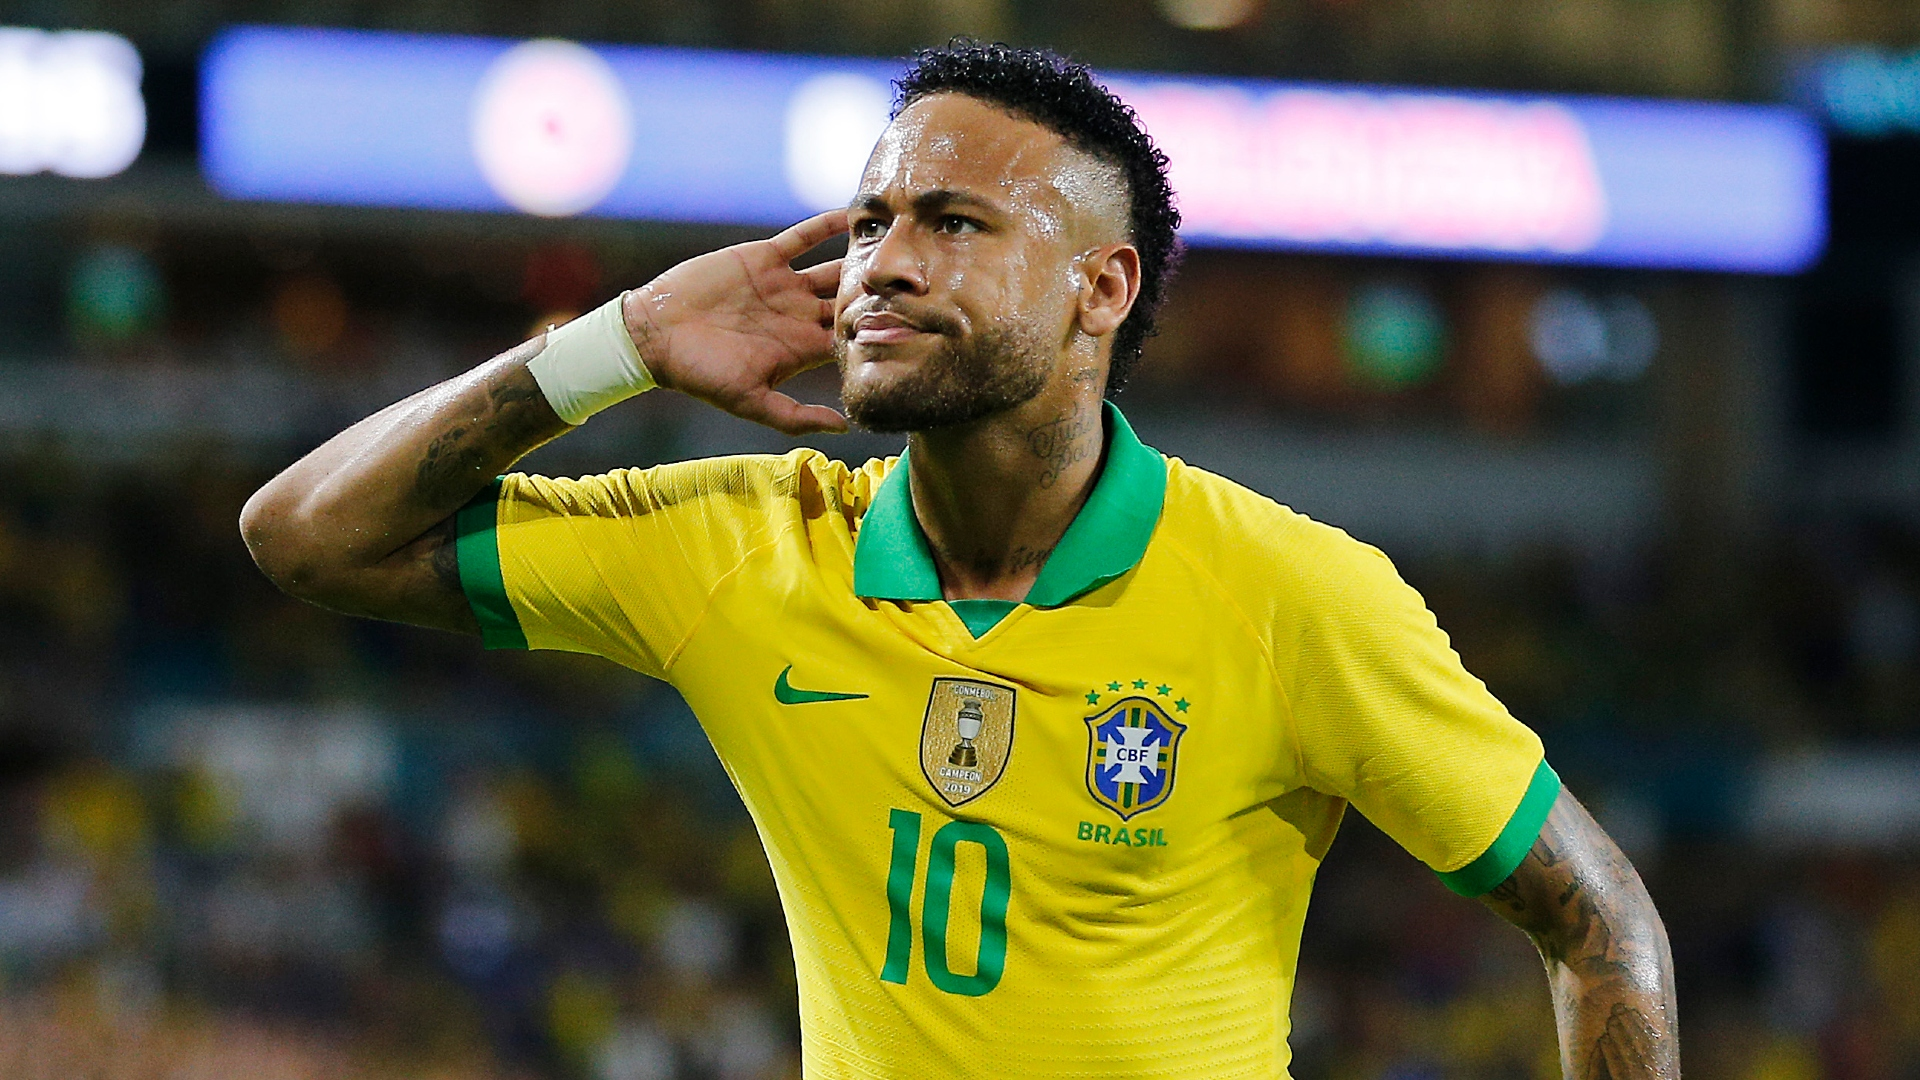 Jesus calls on Brazil to step up in Neymar's absence